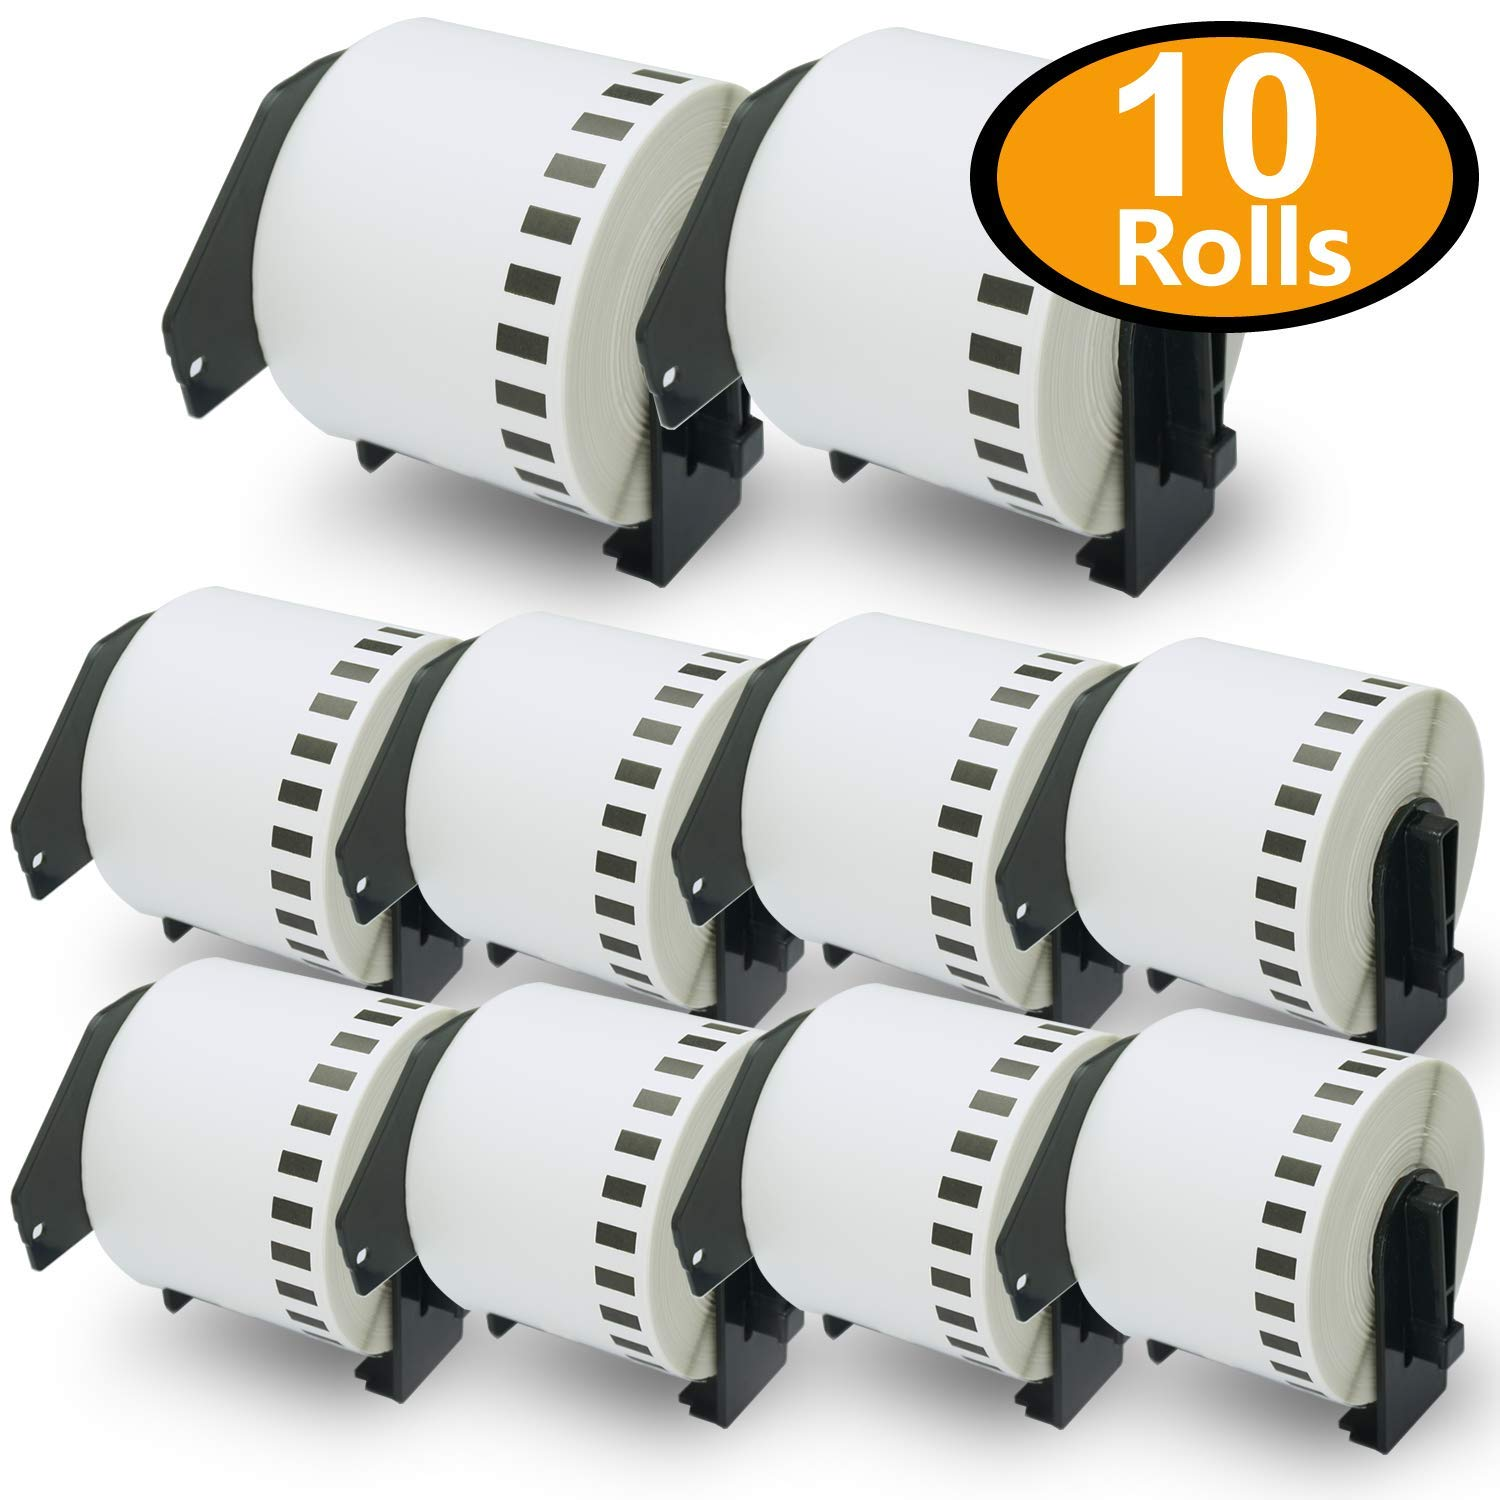 10 Rolls Brother-Compatible P-Touch DK-2205 62mm x 30.48m(2-3/7 x 100') Continuous Length Paper Tape Labels With Refillable Cartridge BETCKEY DK22205-Y10